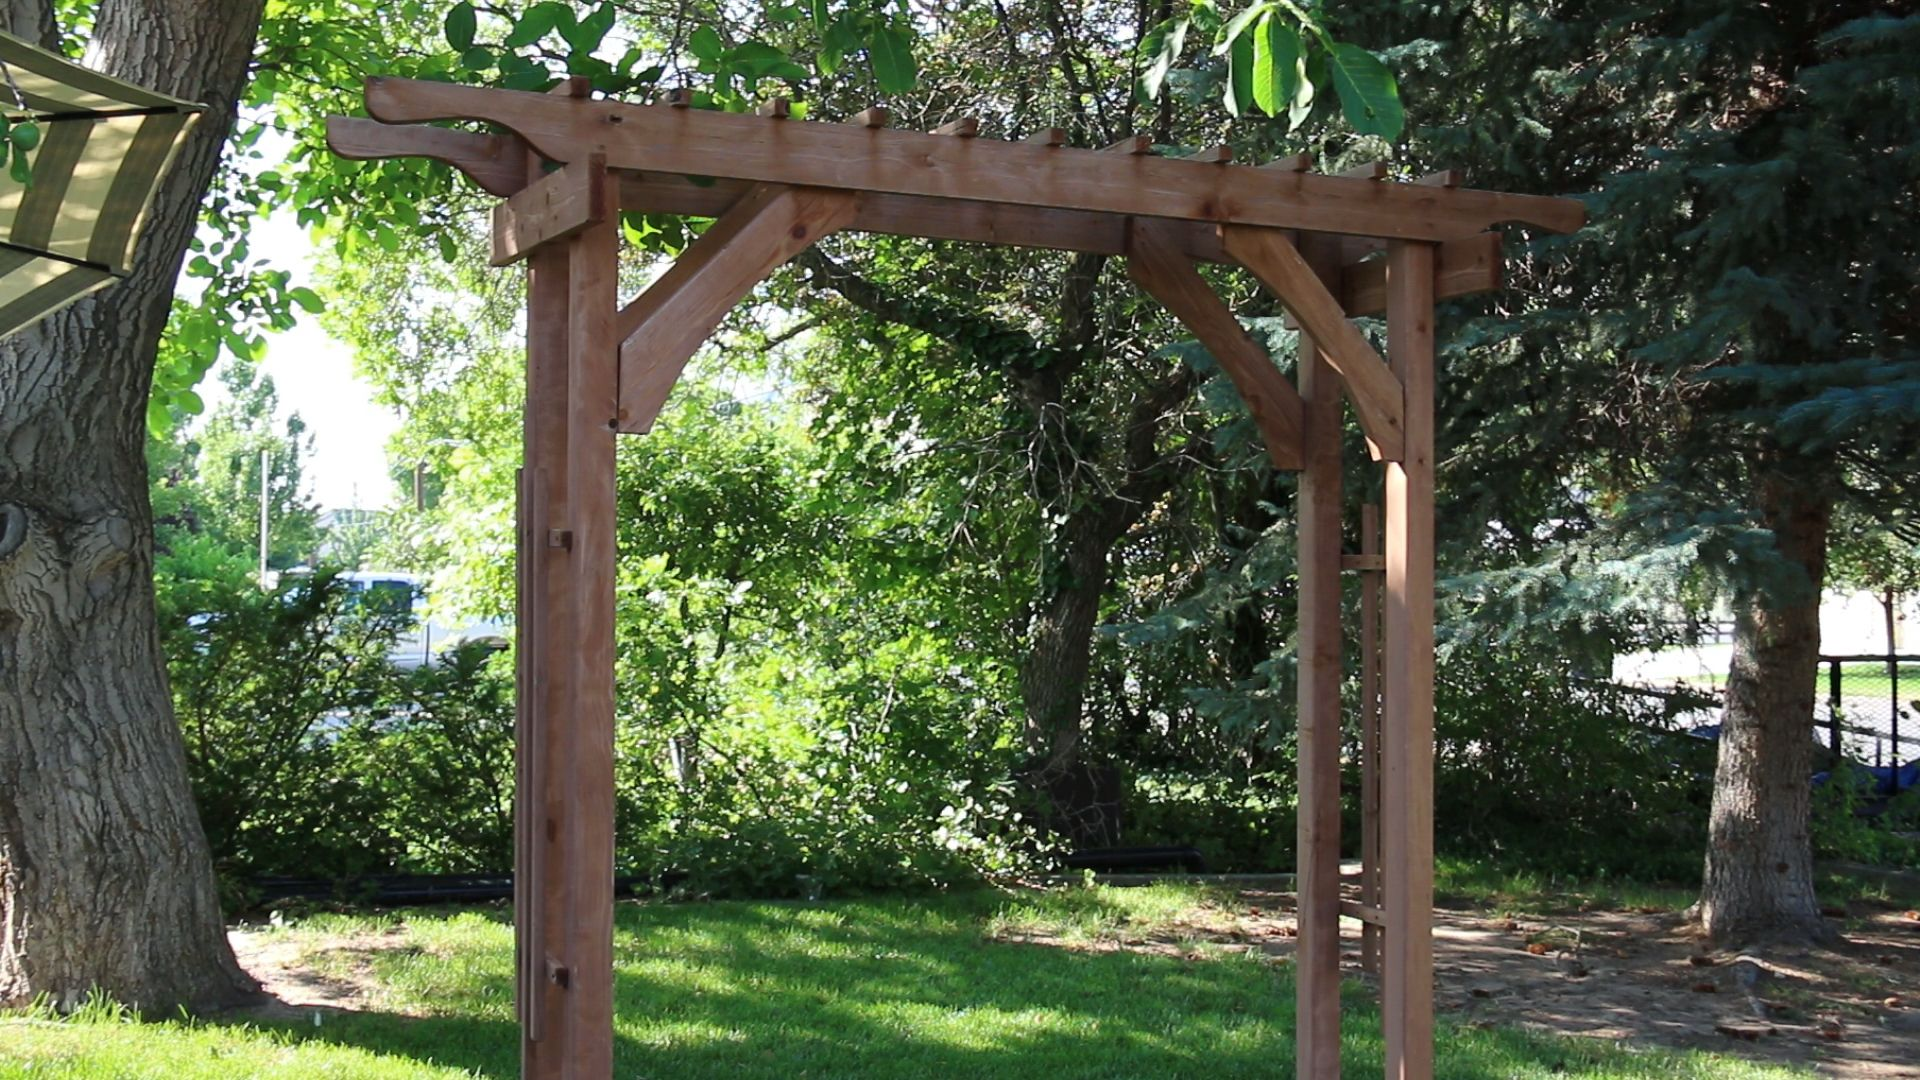 2 4 And More How To Build A Garden Arbor Using Budget Friendly Structural Lumber Garden Arbor Diy Wedding Archway Outdoor Pergola